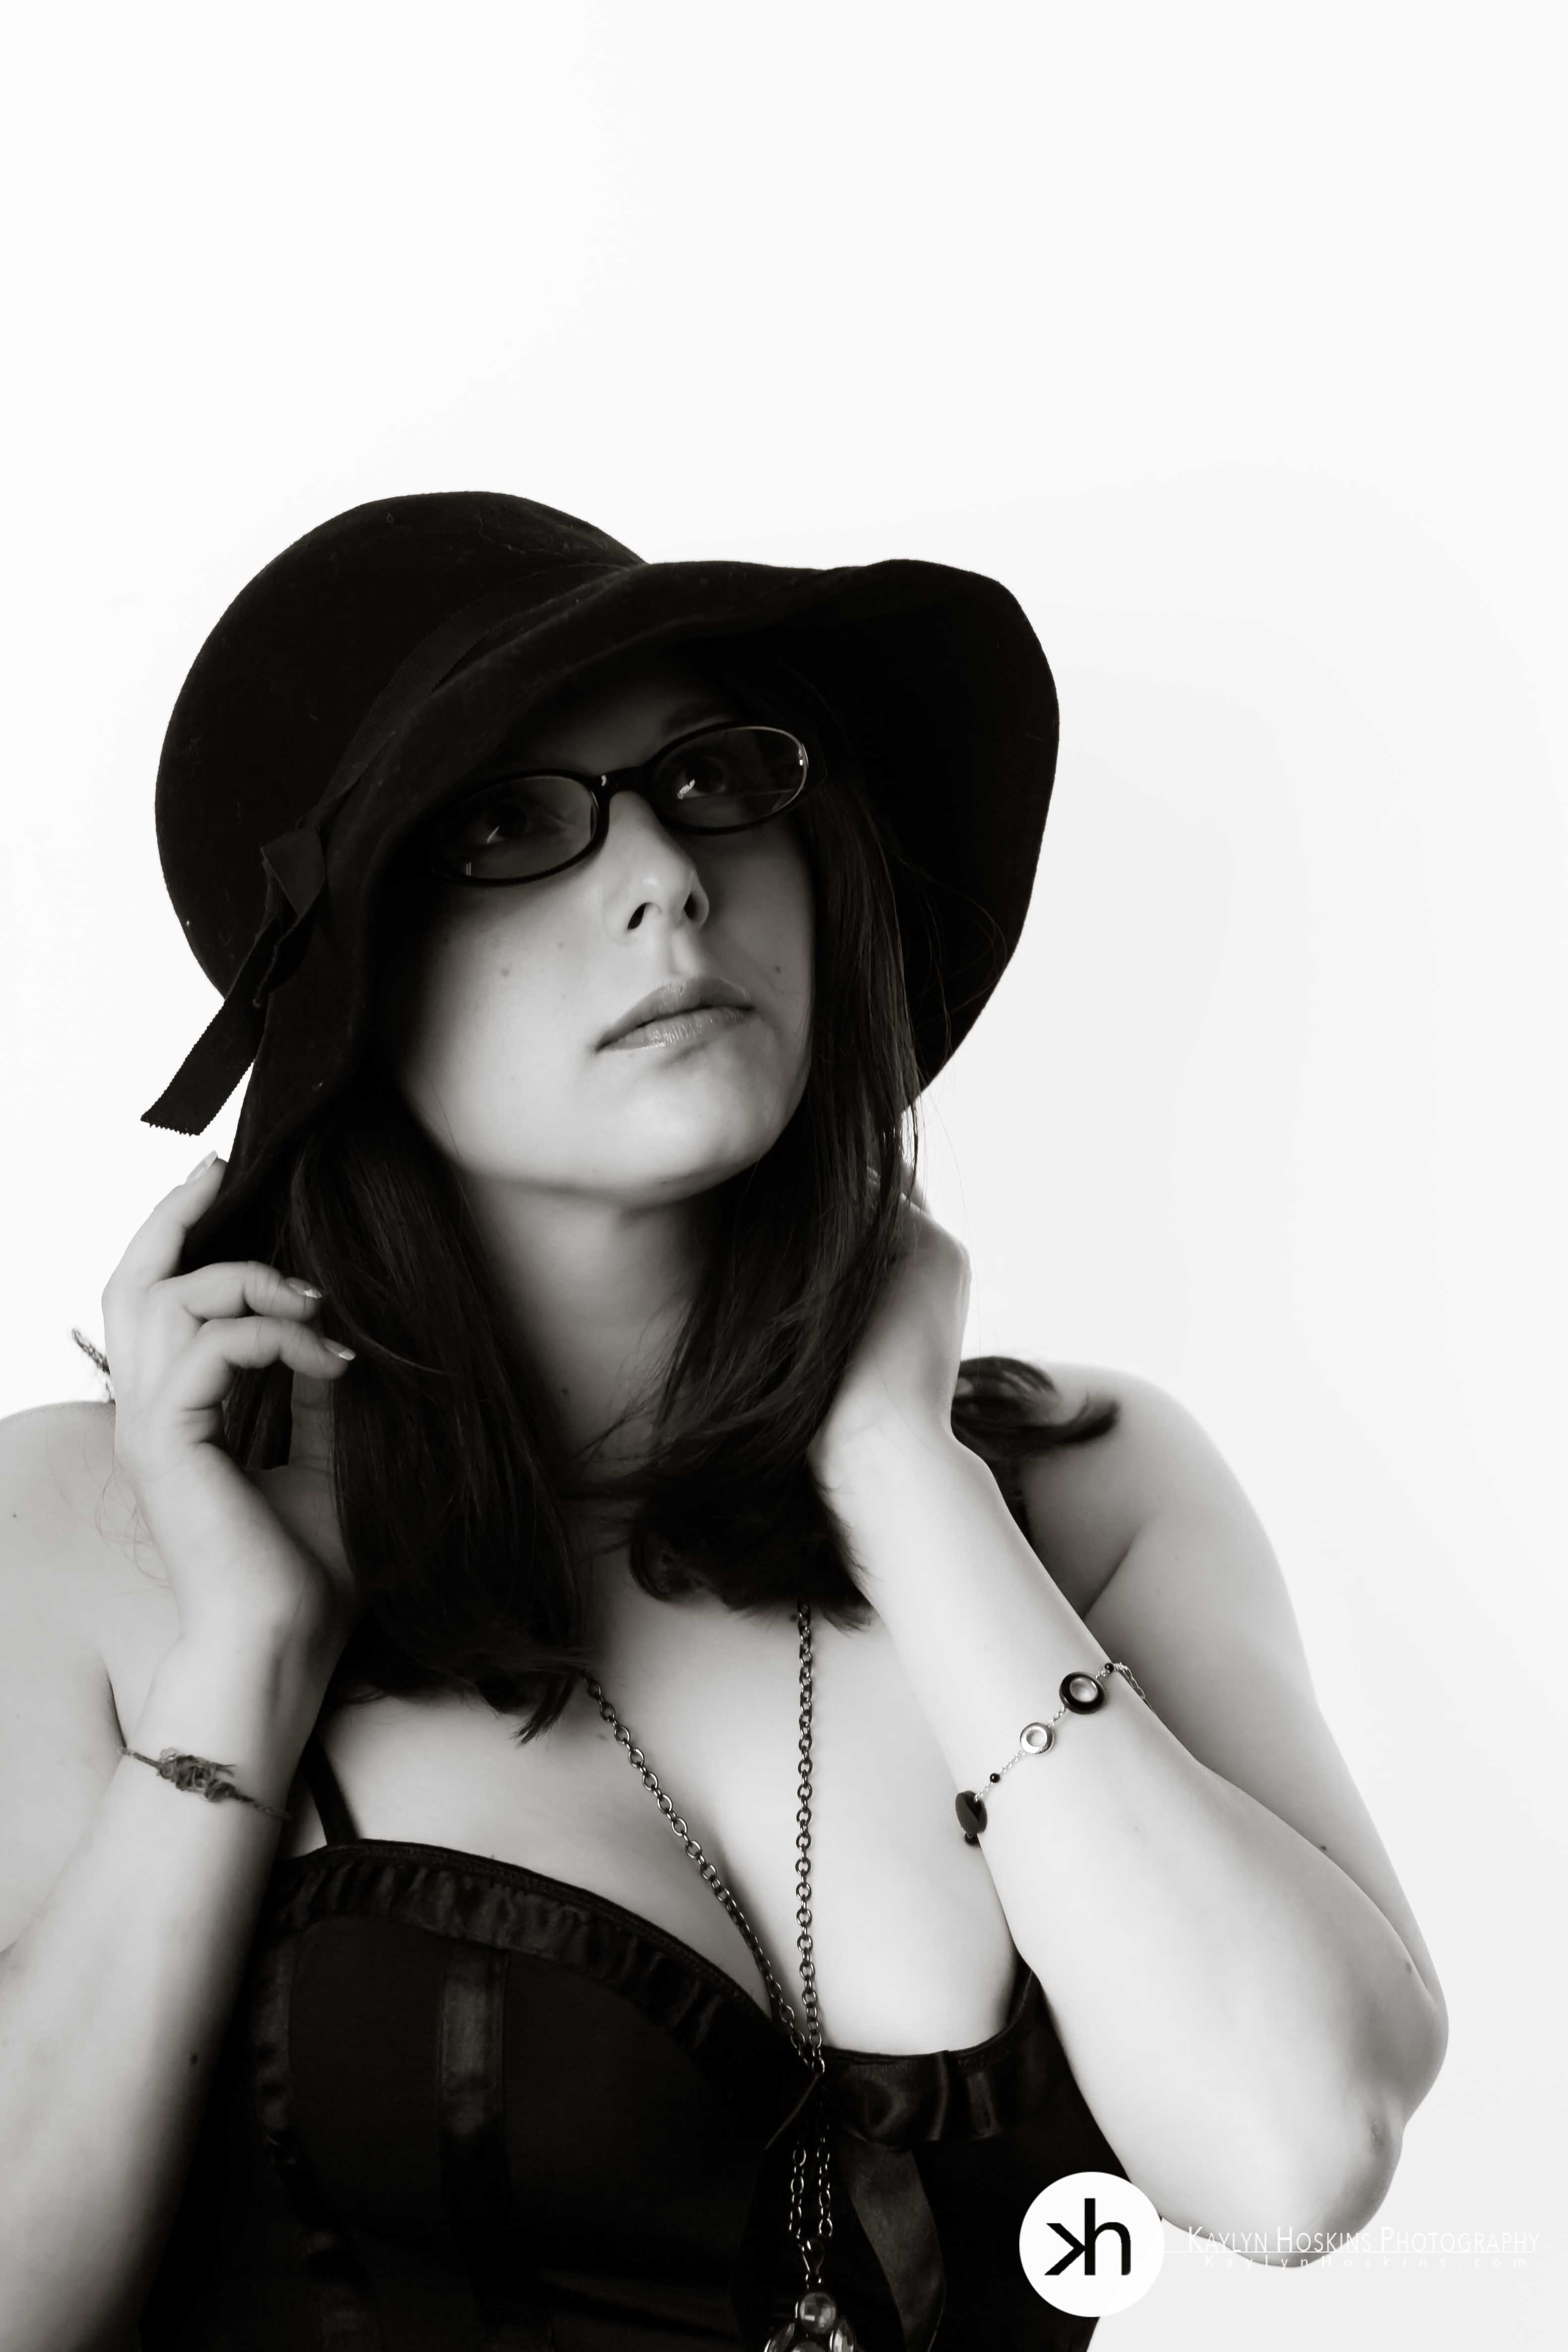 Boudoir client in black and white